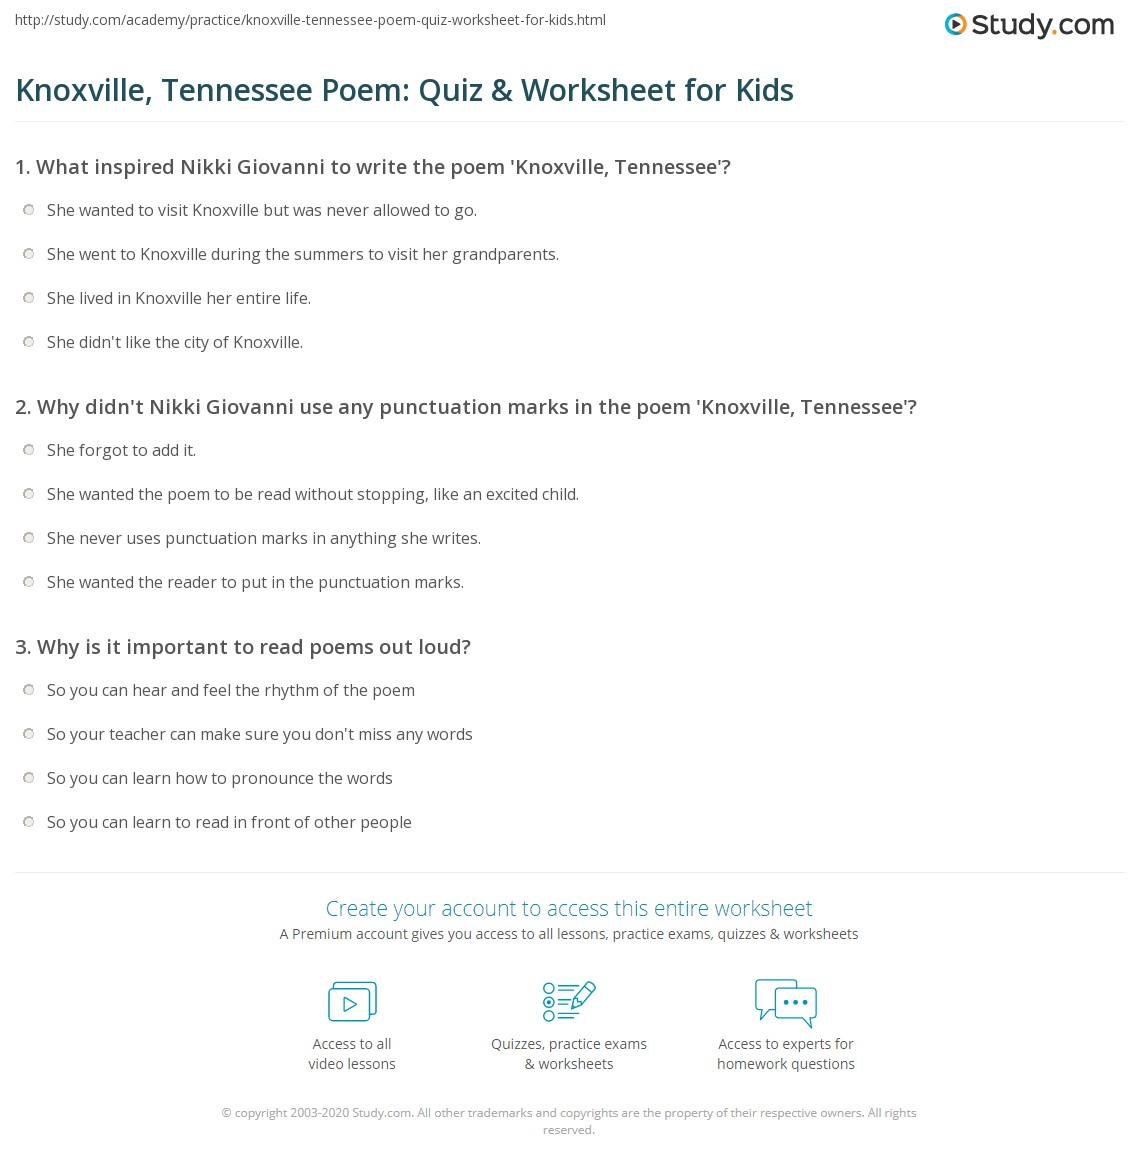 Worksheets Child Support Worksheet Tn knoxville tennessee poem quiz worksheet for kids study com print by nikki giovanni lesson worksheet